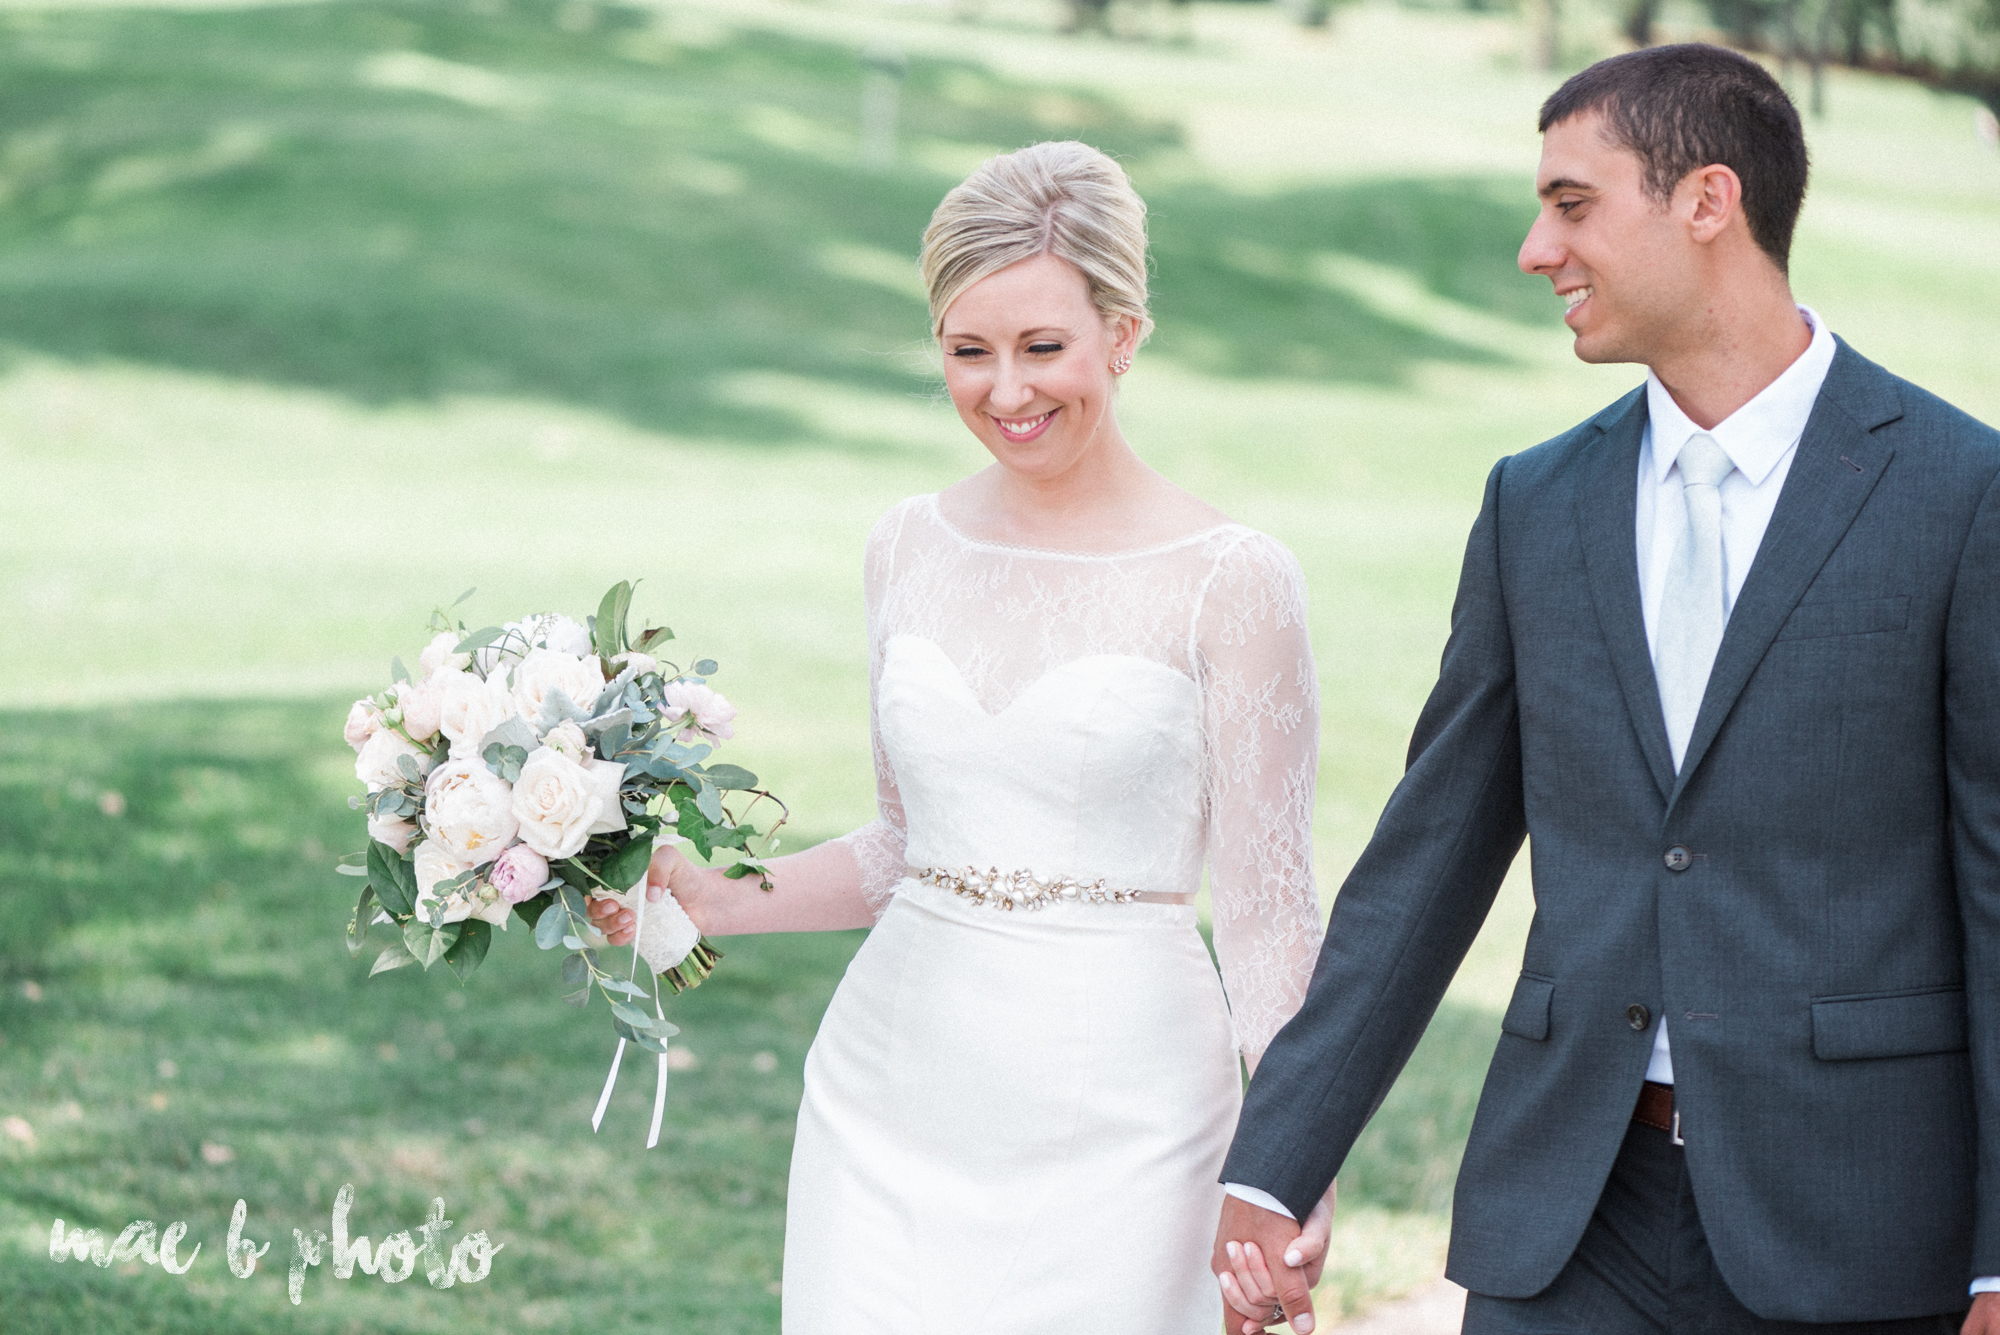 emily and michael's industrial chic summer country club wedding at the lake club in poland ohio photographed by cleveland wedding photographer mae b photo-64.jpg